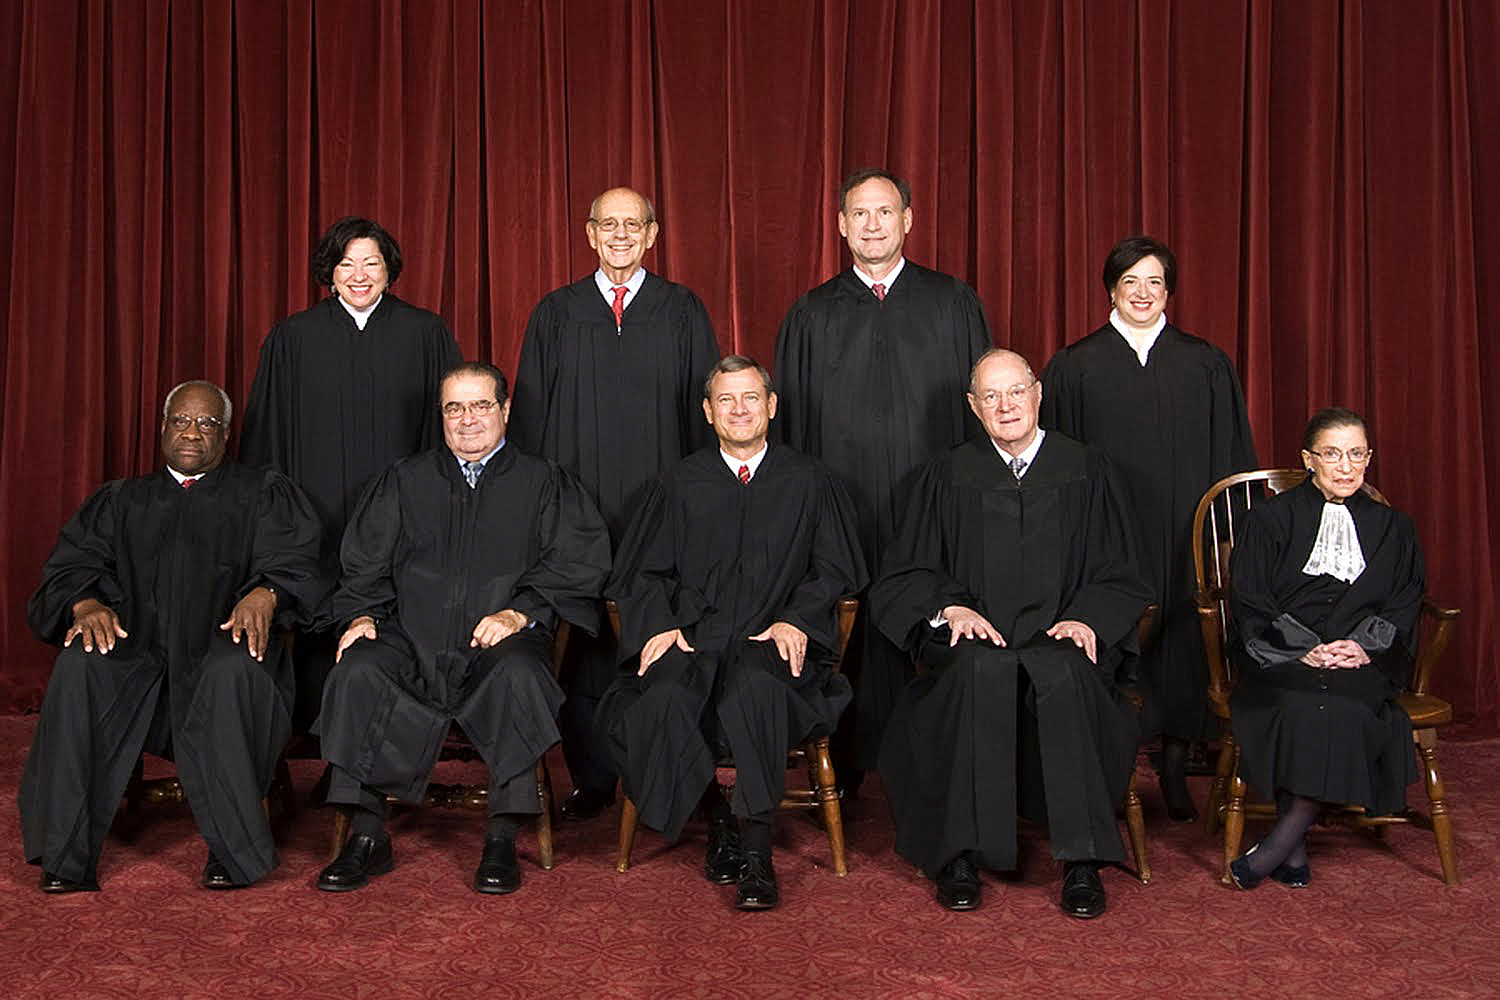 Supreme Court of the United States - Wikipedia, the free encyclopedia